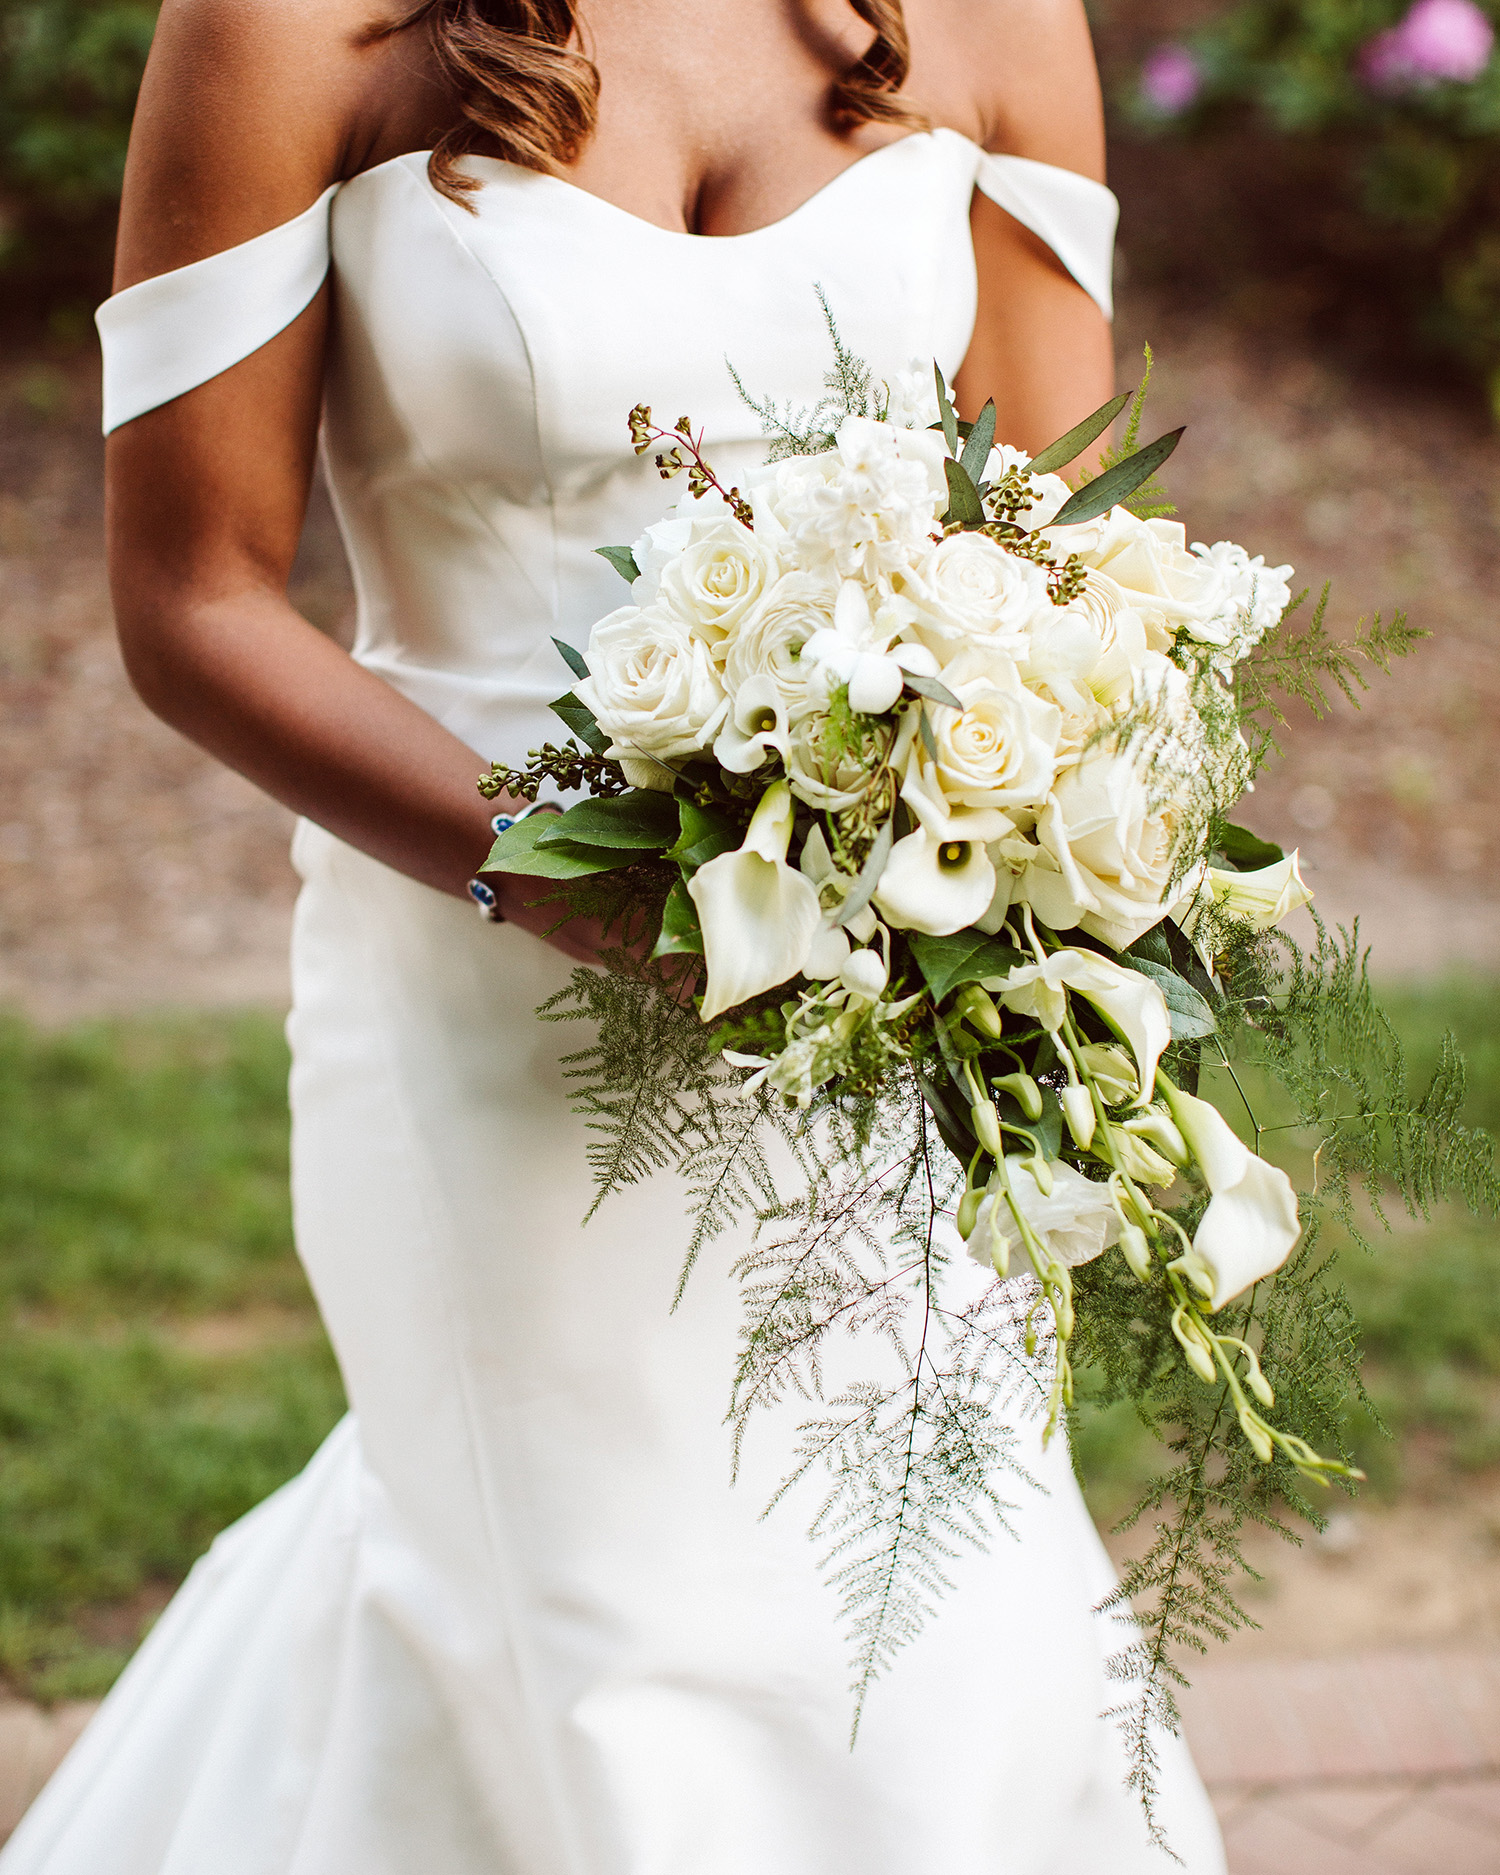 bryanna nick wedding bride flower bouquet